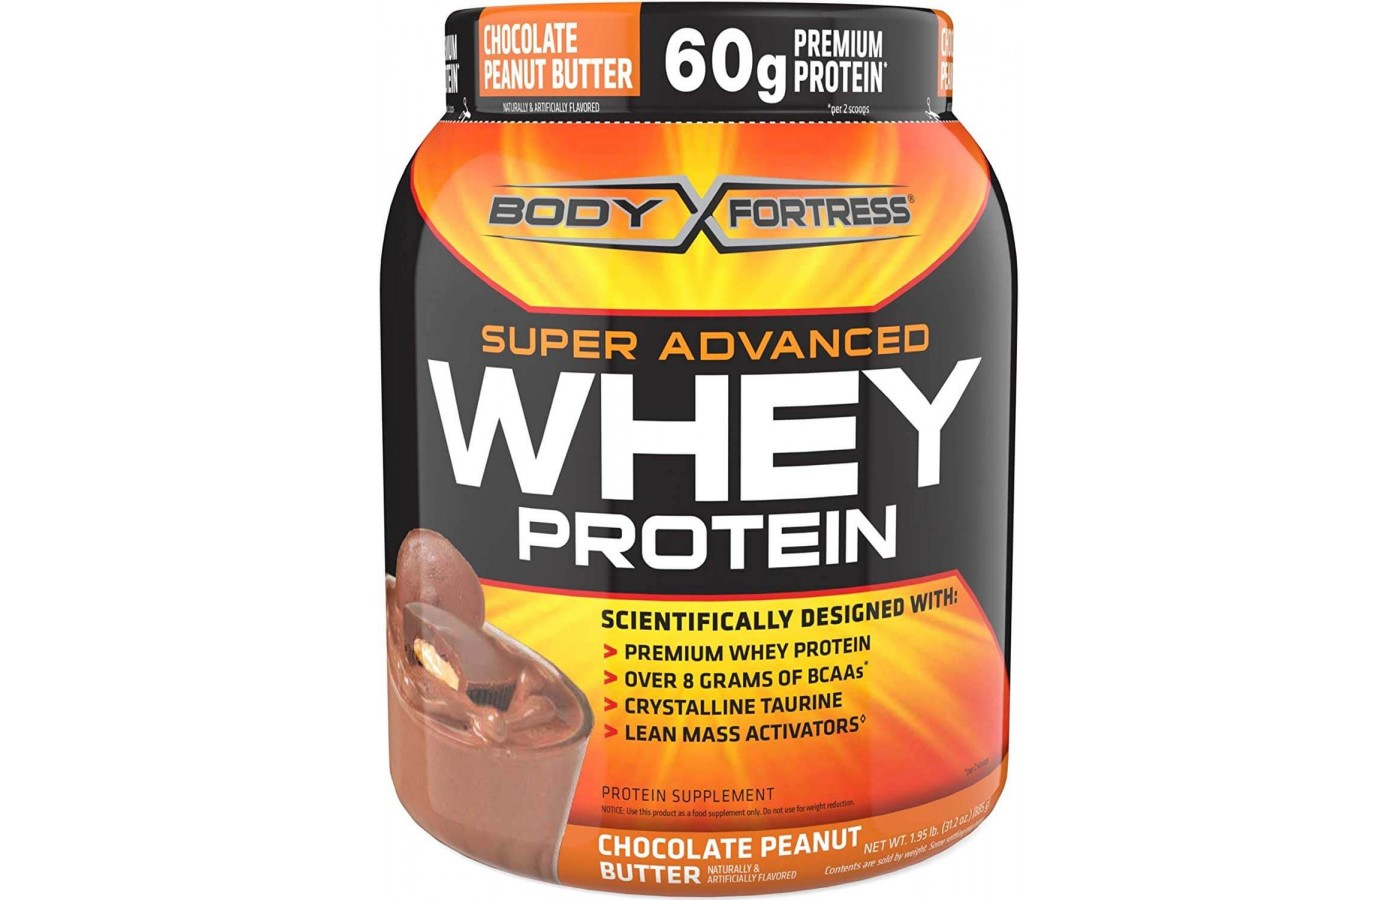 Body Fortress Whey Protein. Cookies Whey; Front Whey; Back Whey; Choco PB